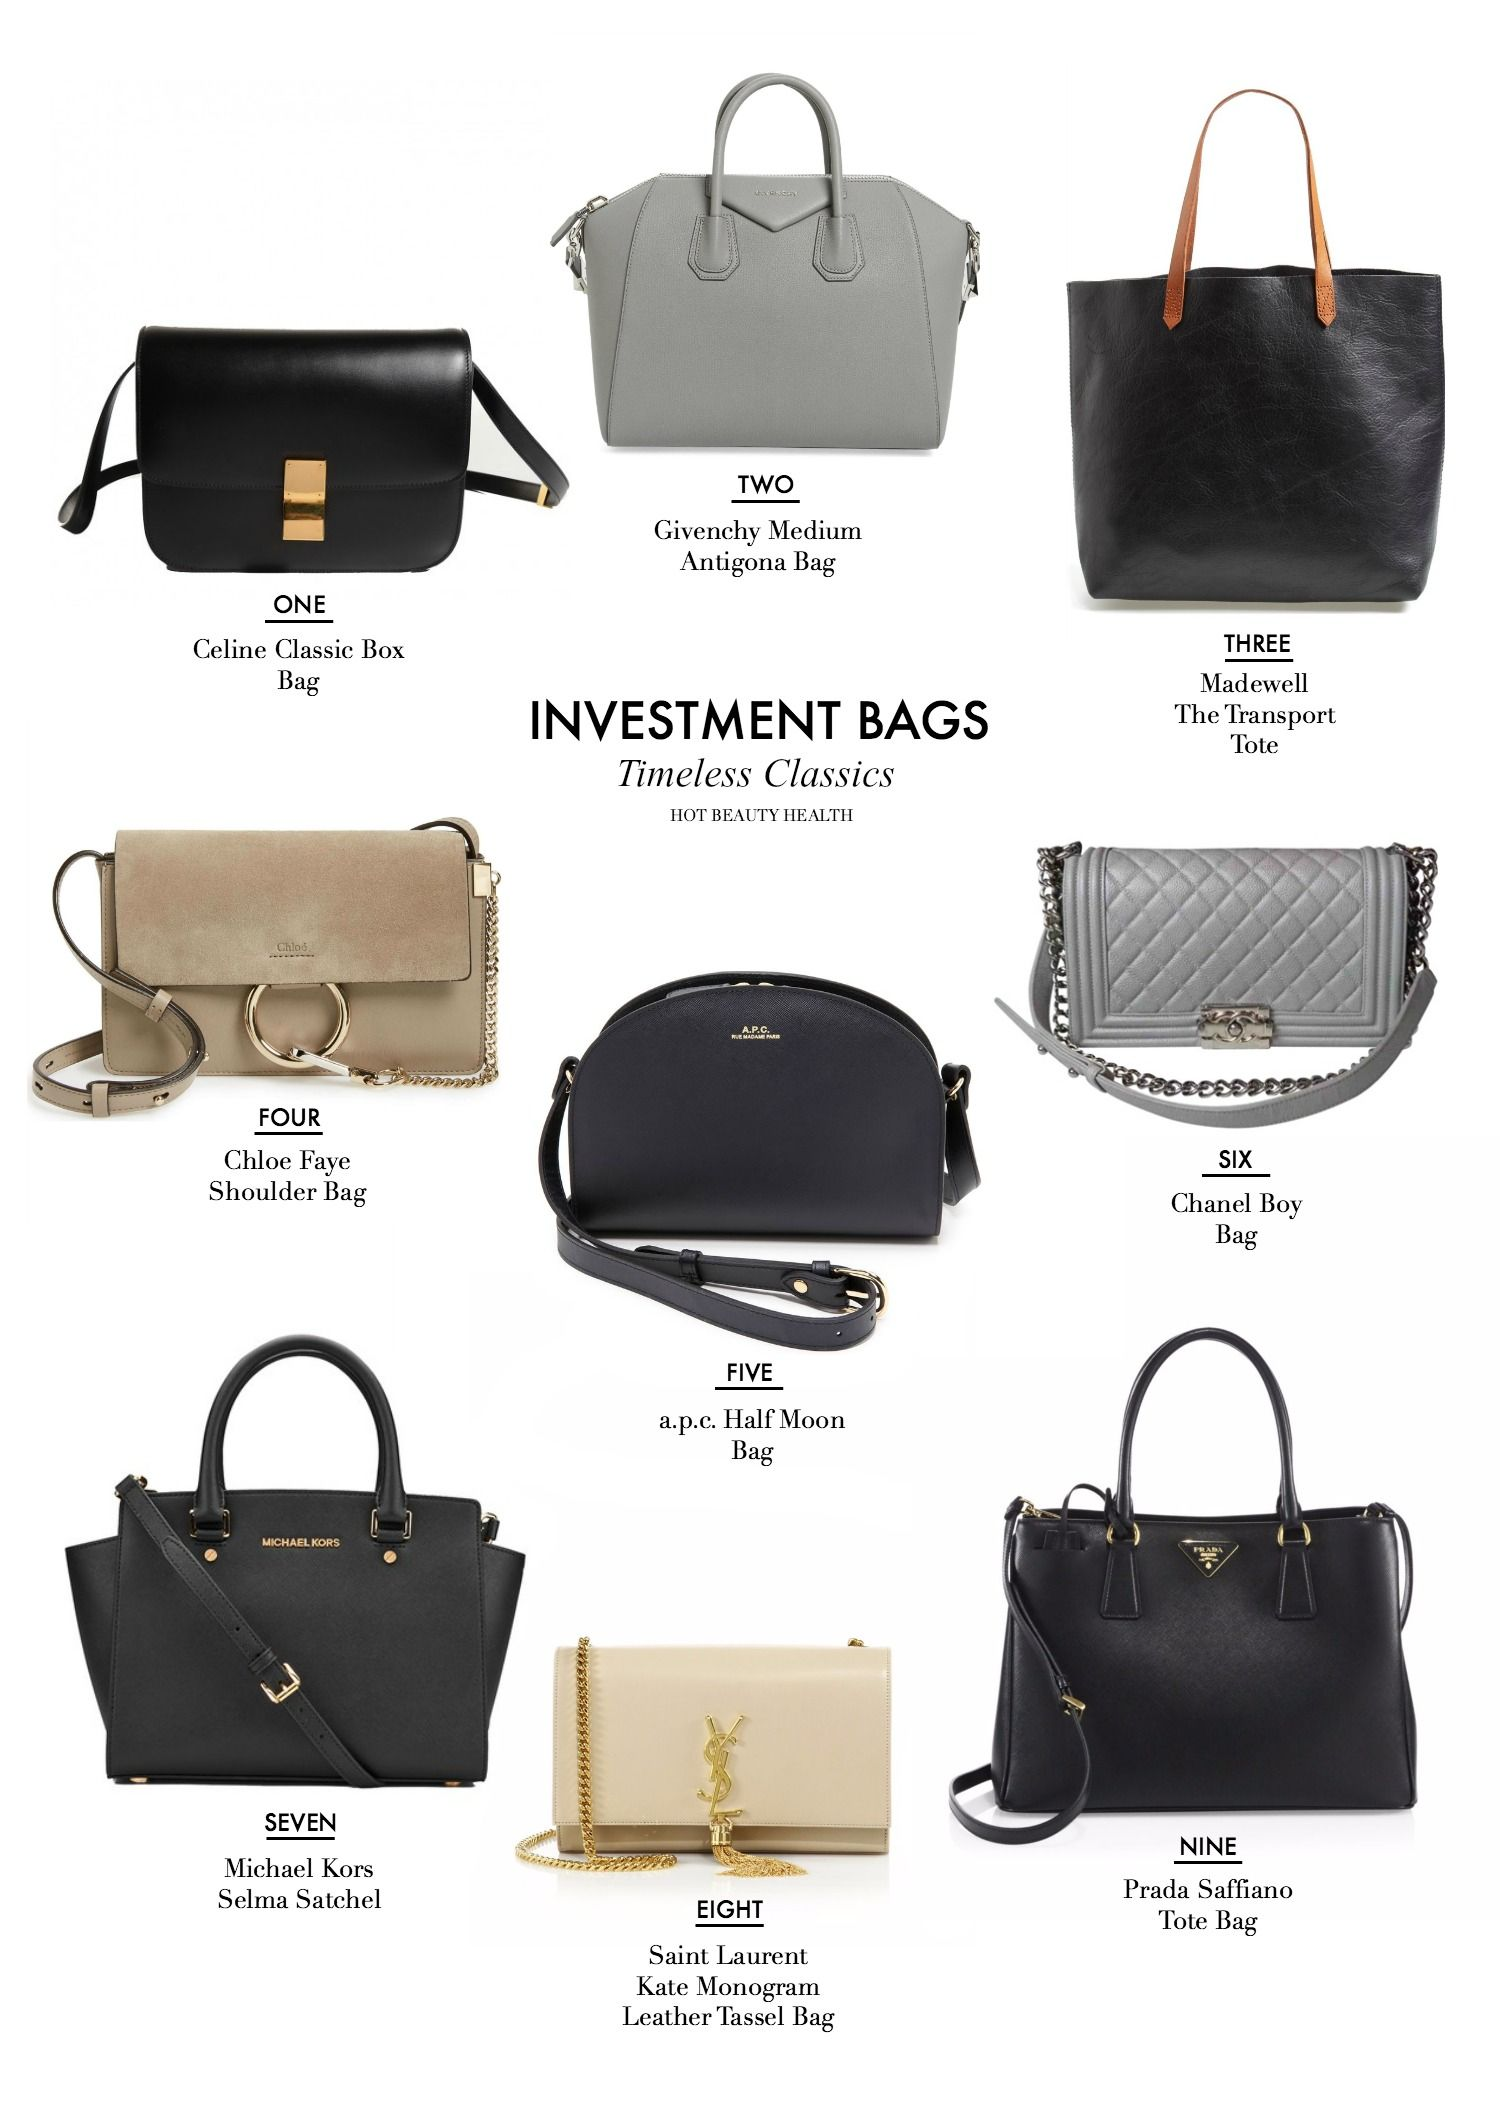 f0f0de33f0c5 Here are 9 classic  handbags from Chanel and Prada to Celine and Saint  Laurent that are worth investing in right now. Hot Beauty Health blog